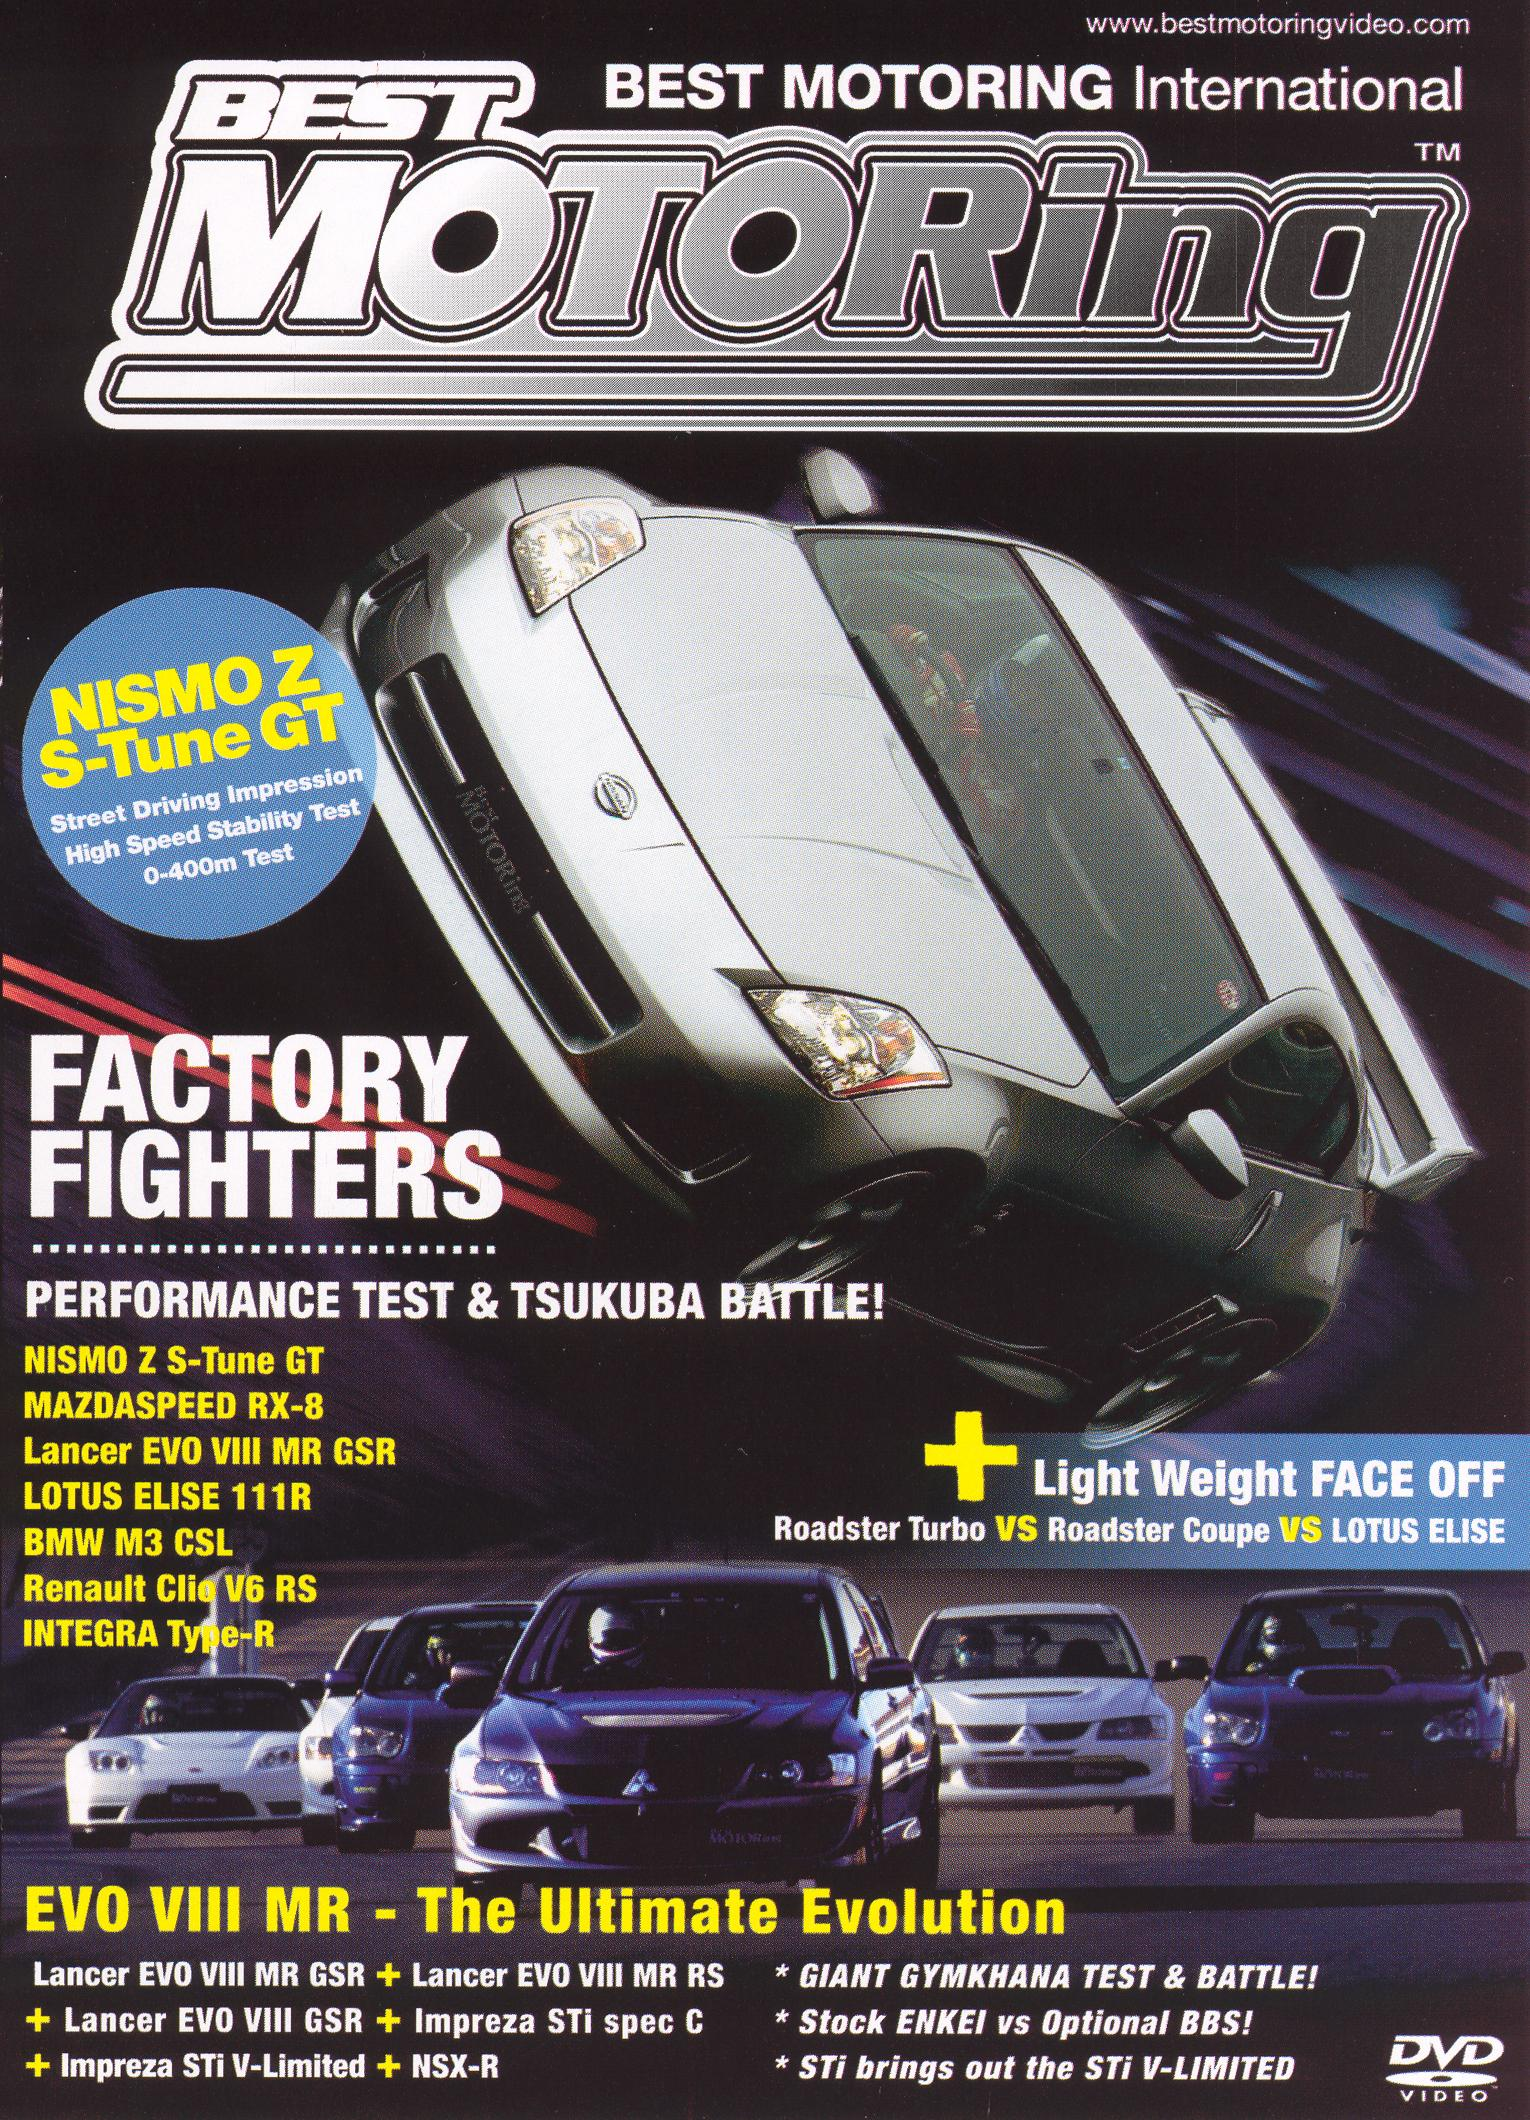 Best Motoring: Factory Fighters